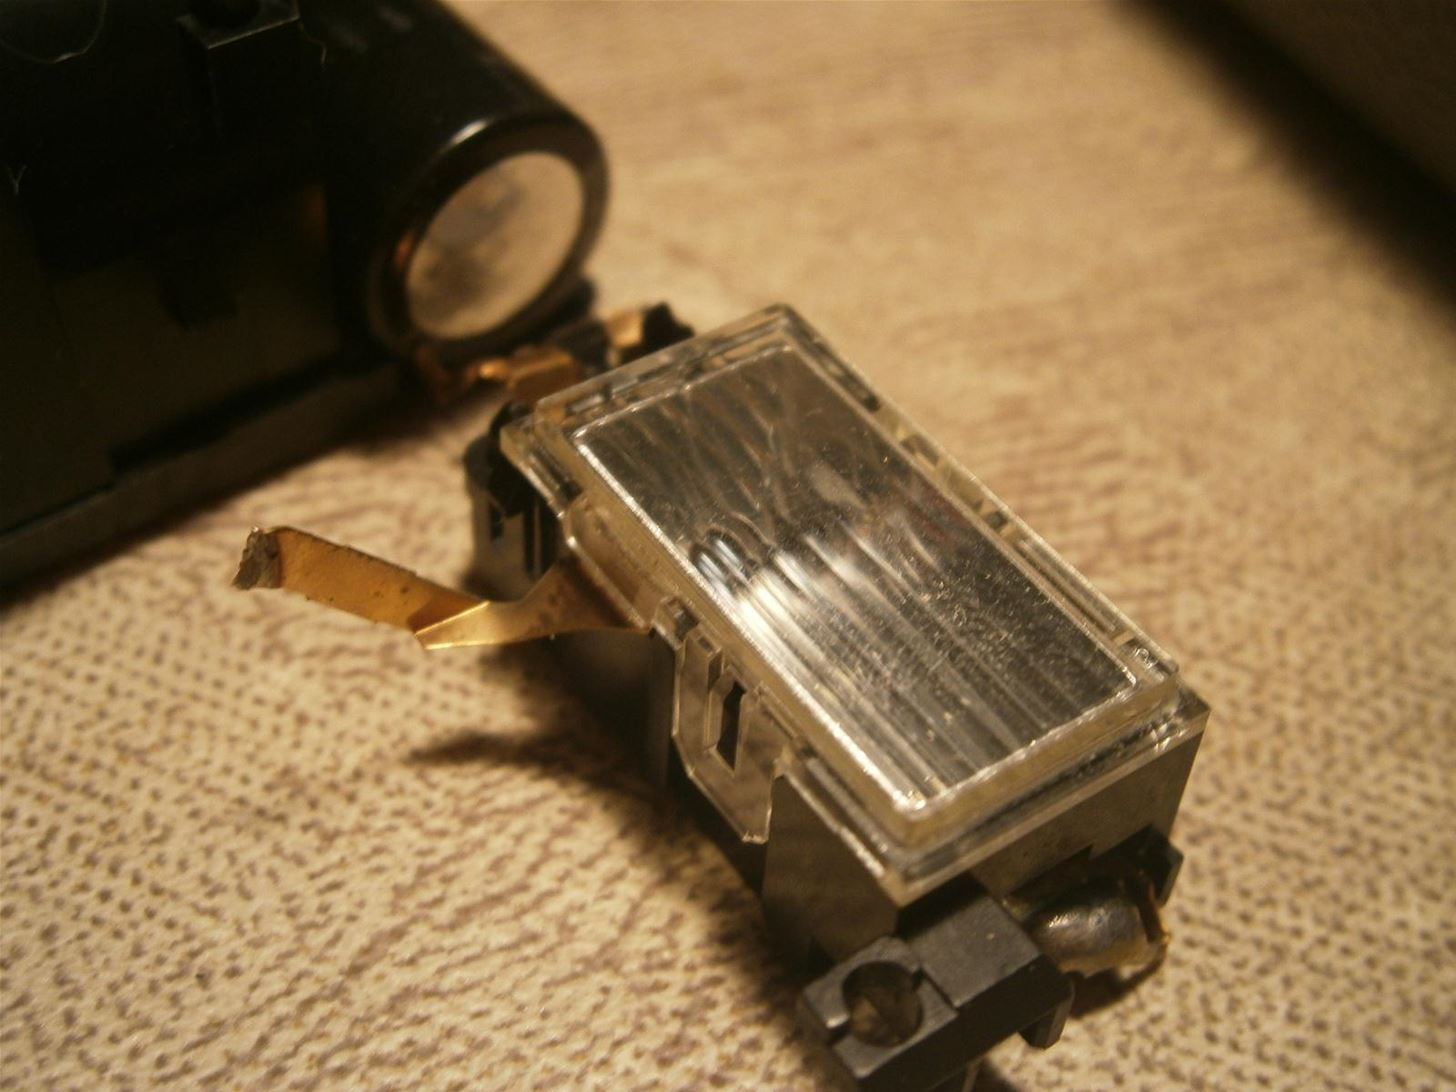 Weapons for the Urban Guerrilla: Make a Taser from a Disposable Camera